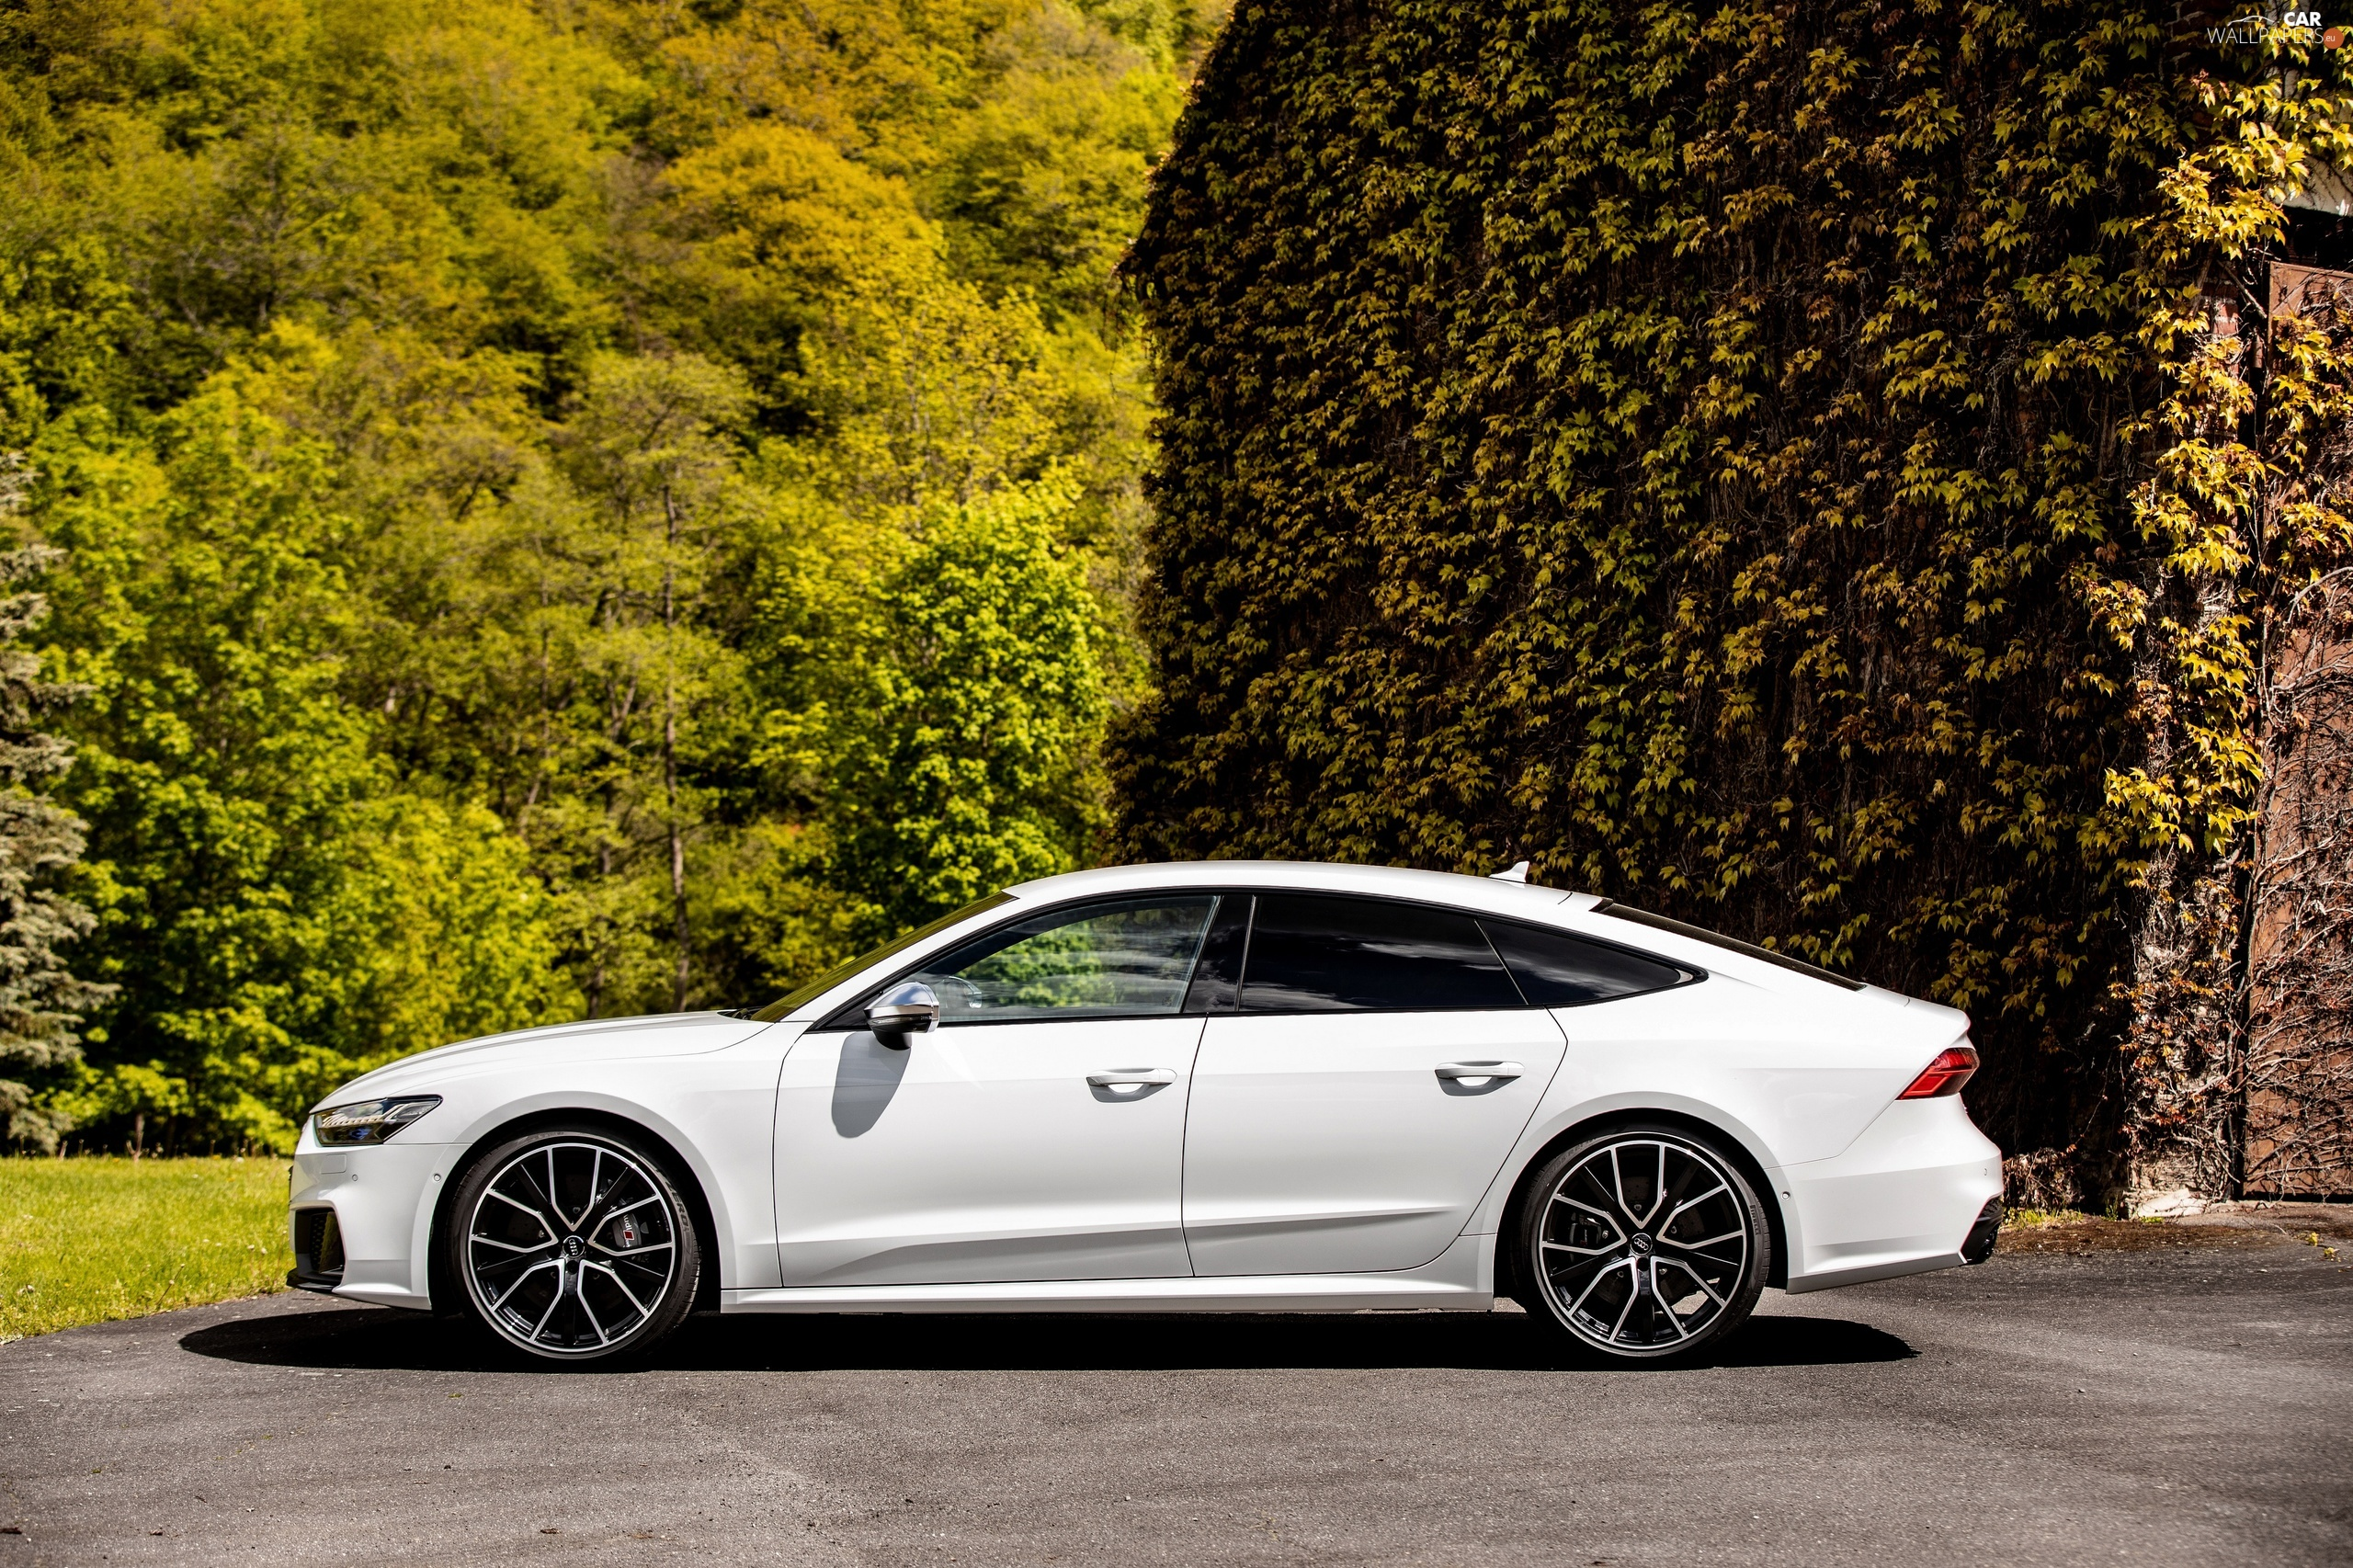 S7, White, viewes, house, trees, Audi A7